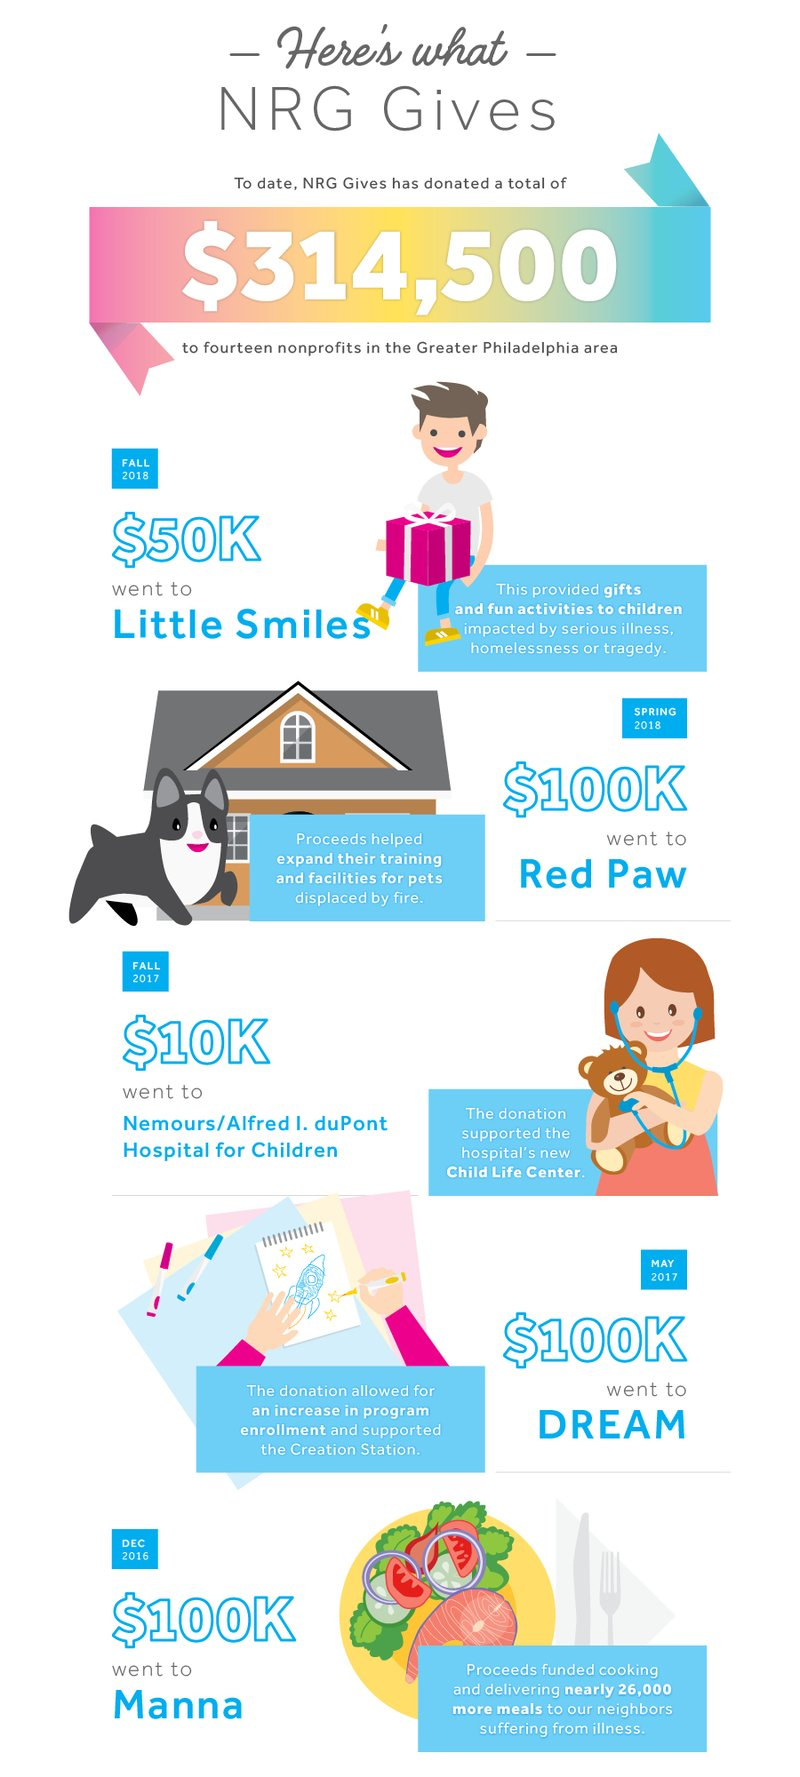 nrg gives infographic 2019